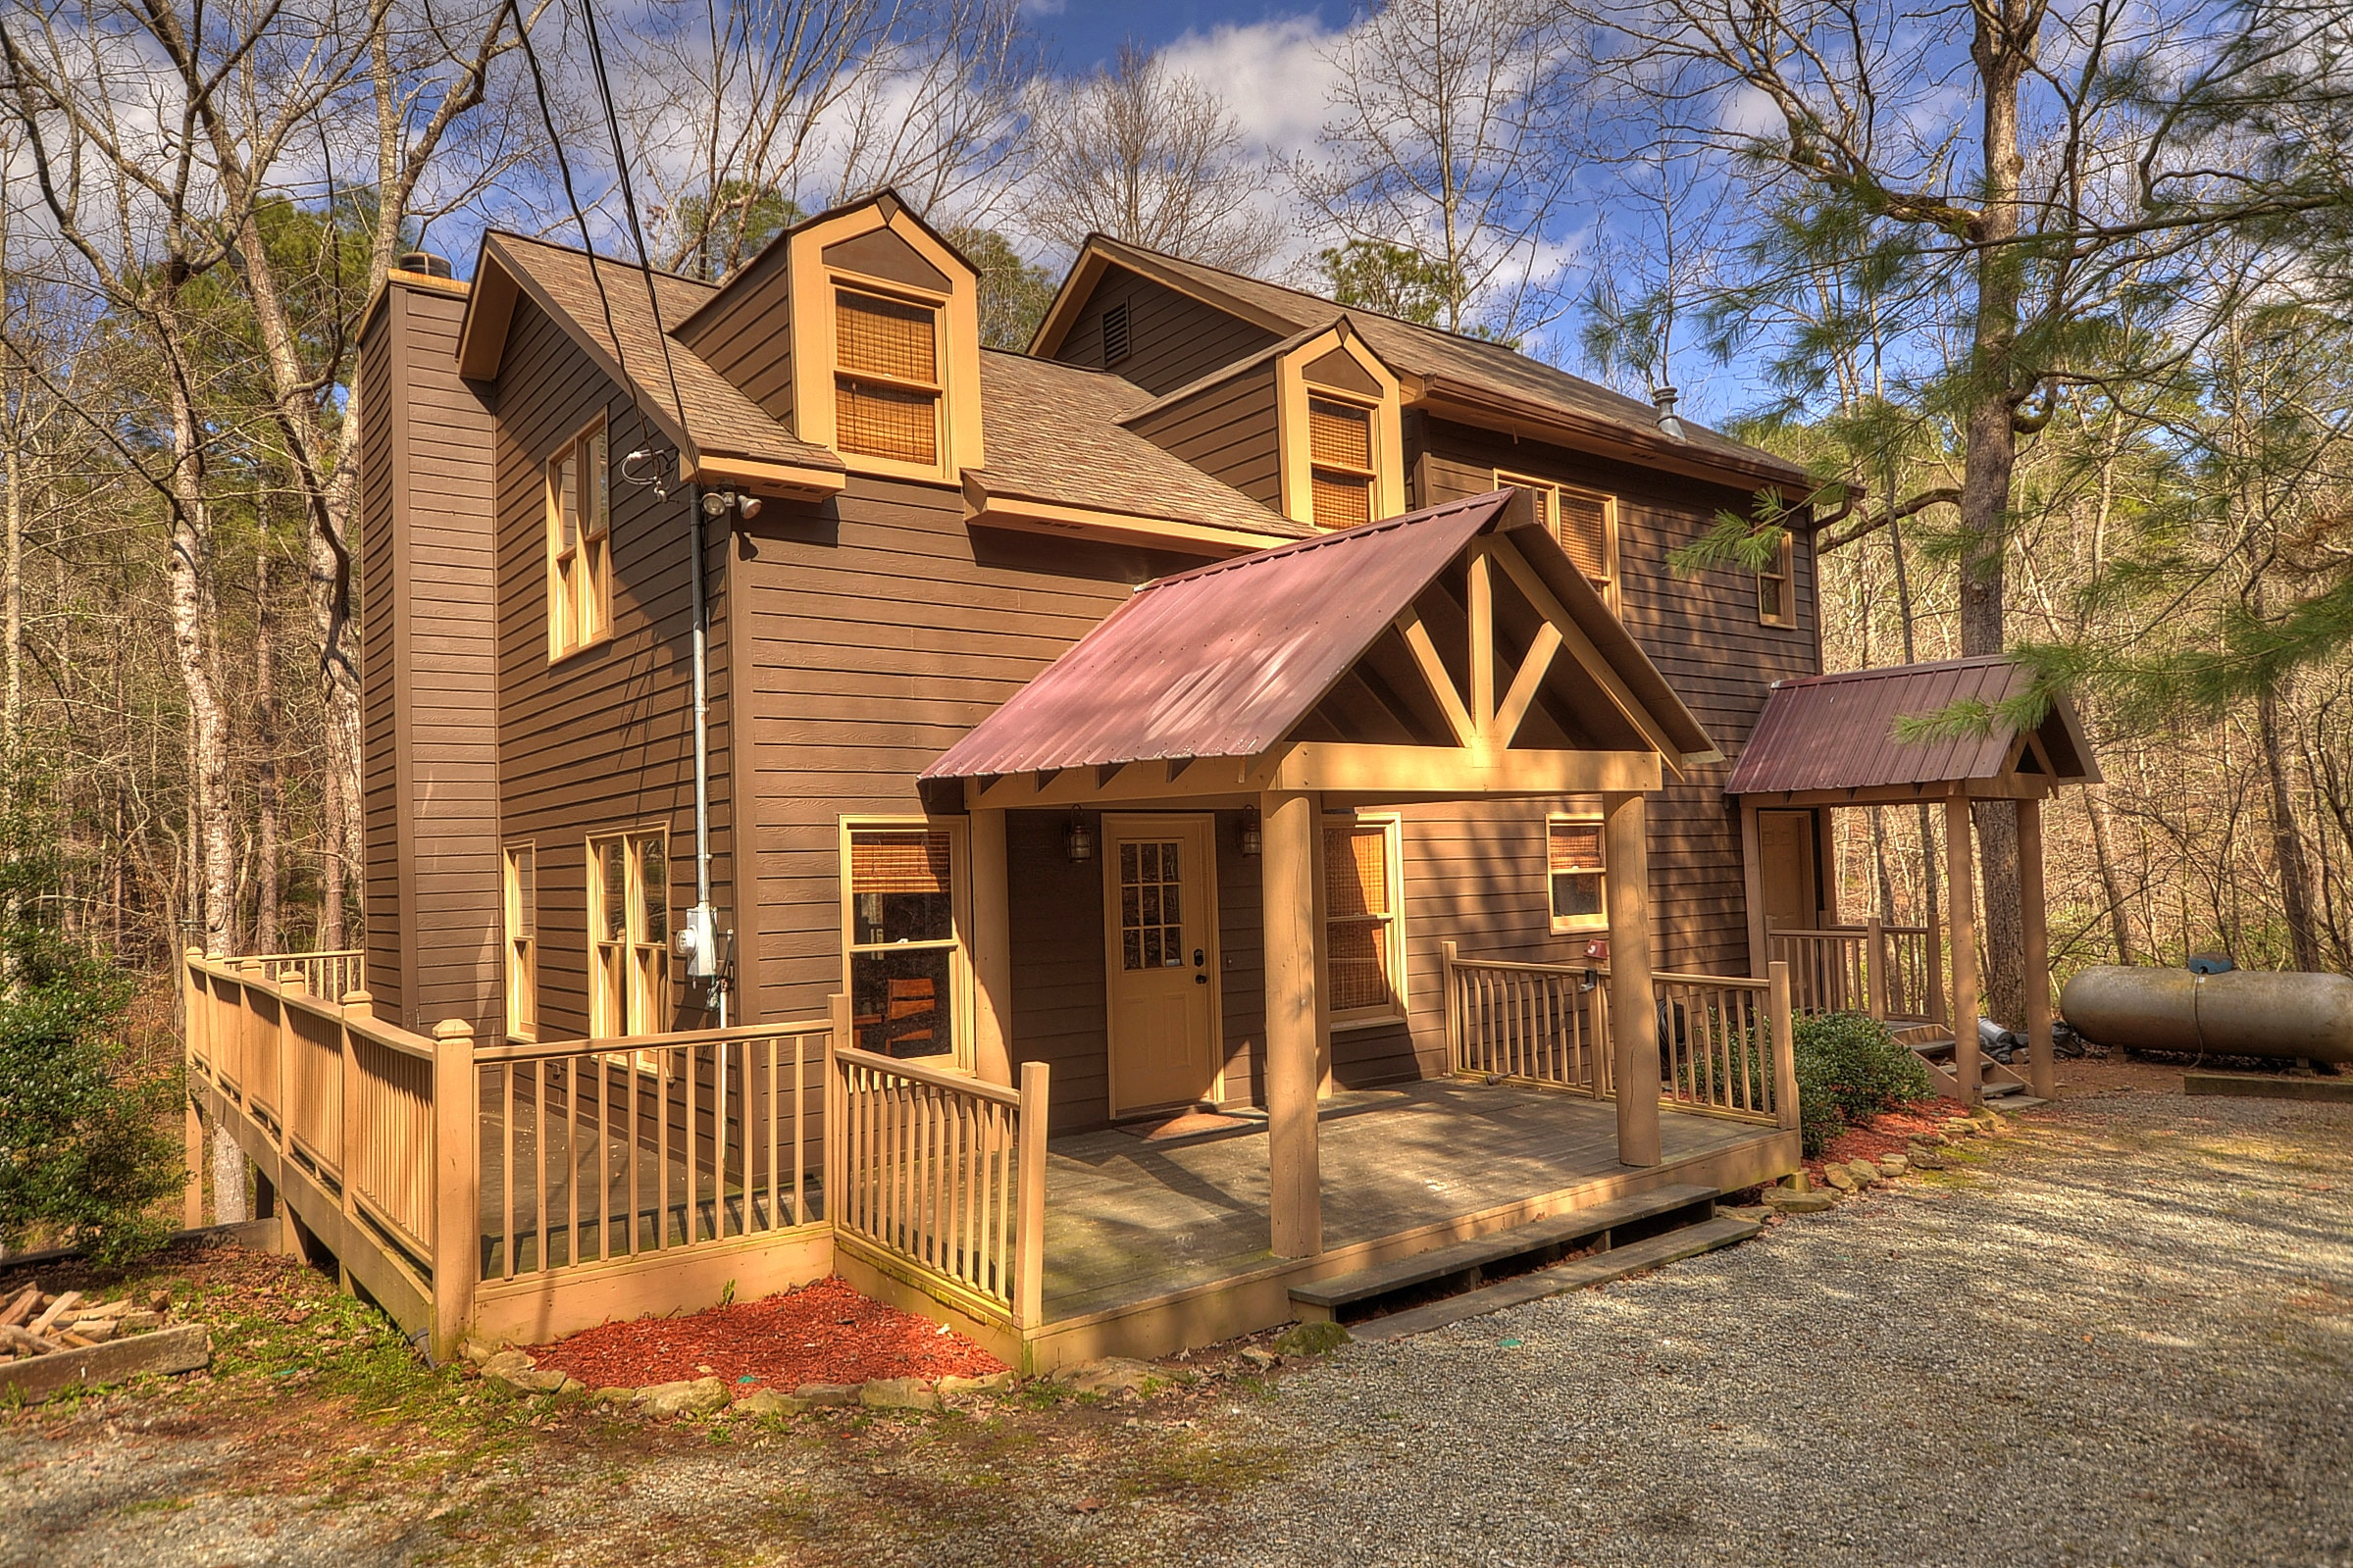 283-Reindeer-Lane-3 The Perfect Cabins for Your Family Vacation in Ellijay - Gilmer County Chamber of Commerce